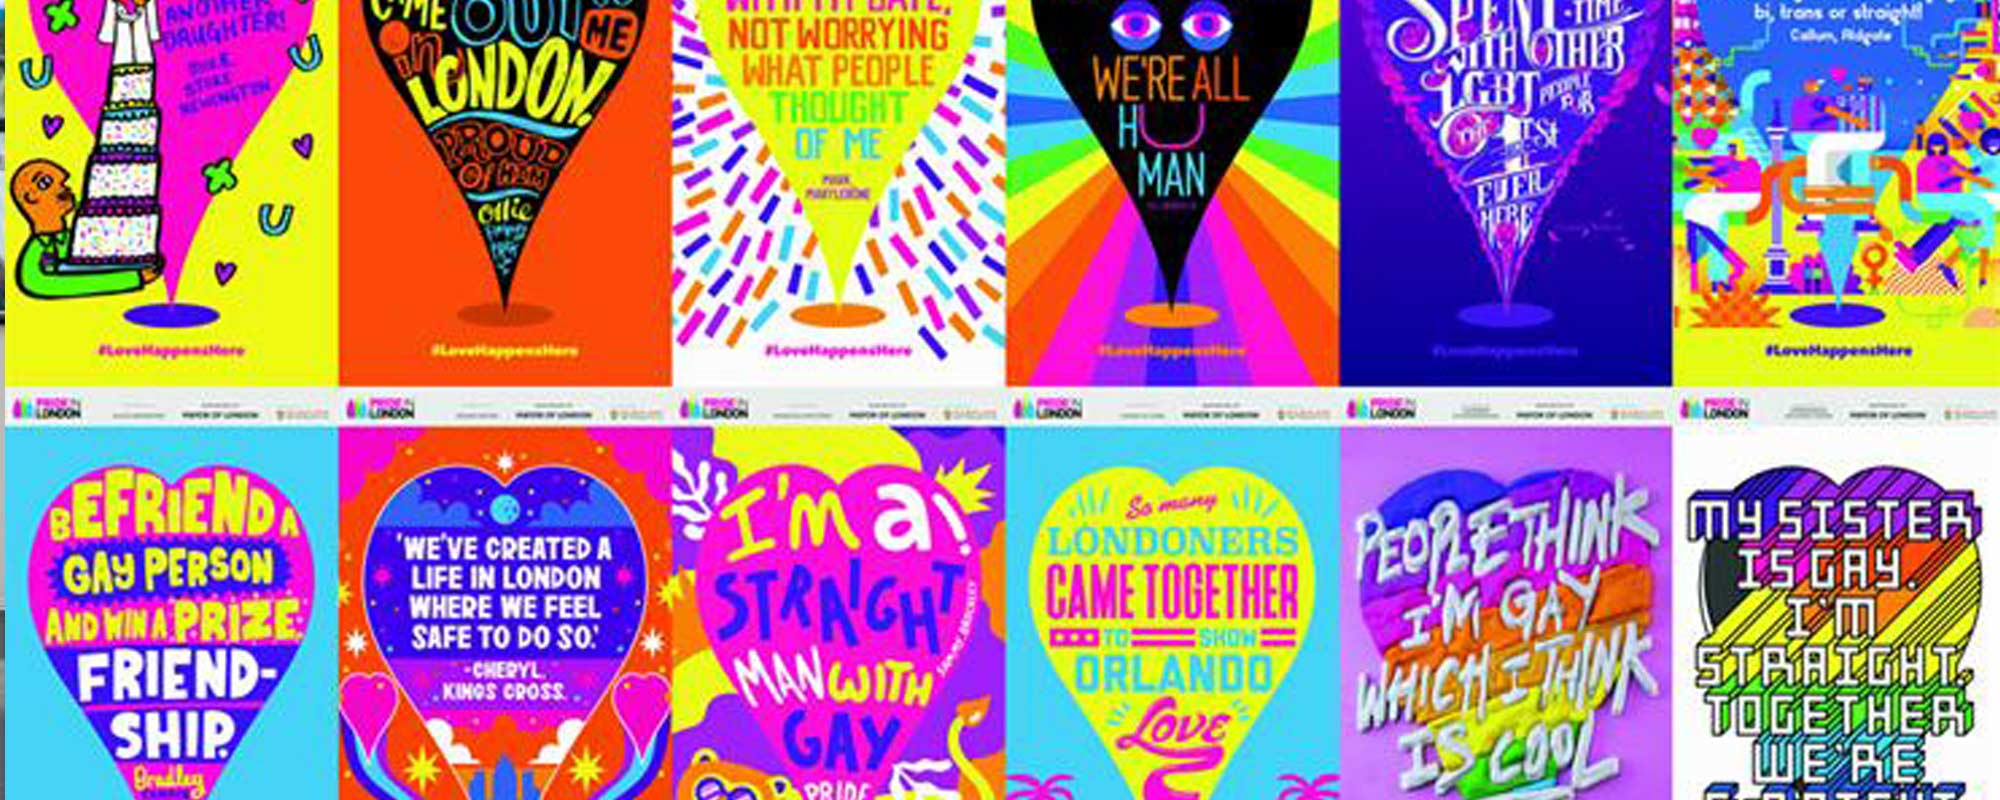 Pride Latest Out-of-Home Campaign Fills London with Vibrant Love Stories